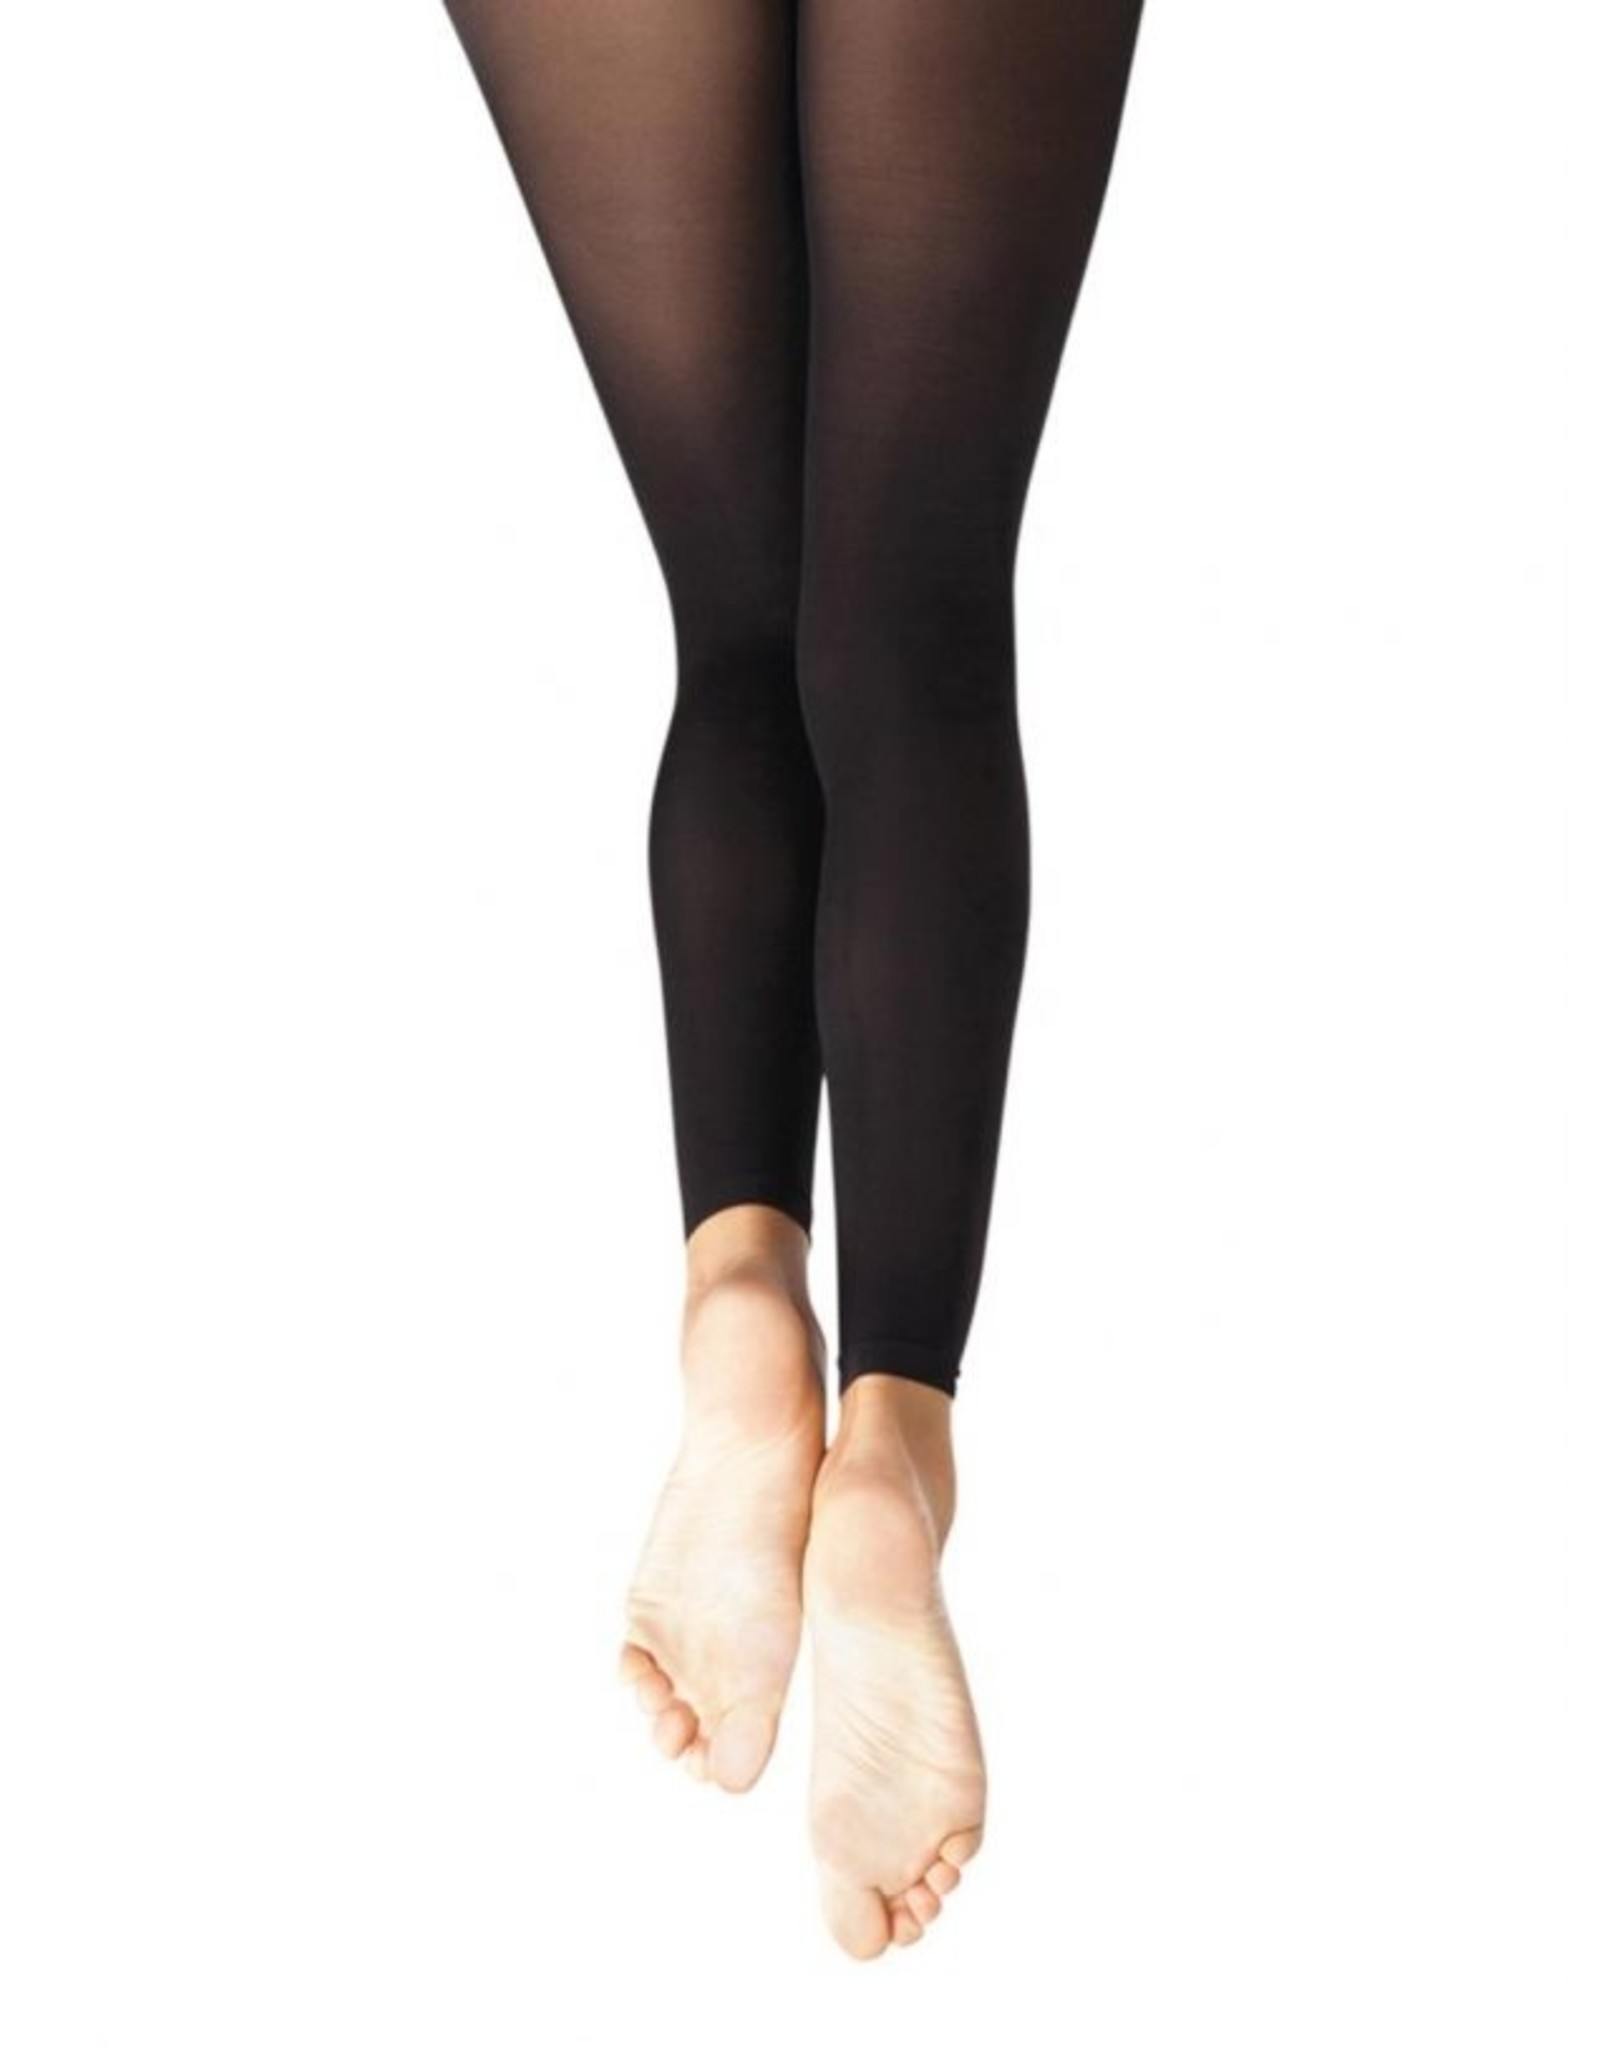 CHILDREN'S CAPEZIO FOOTLESS TIGHTS WITH SELF KNIT WAISTBAND - 1917C